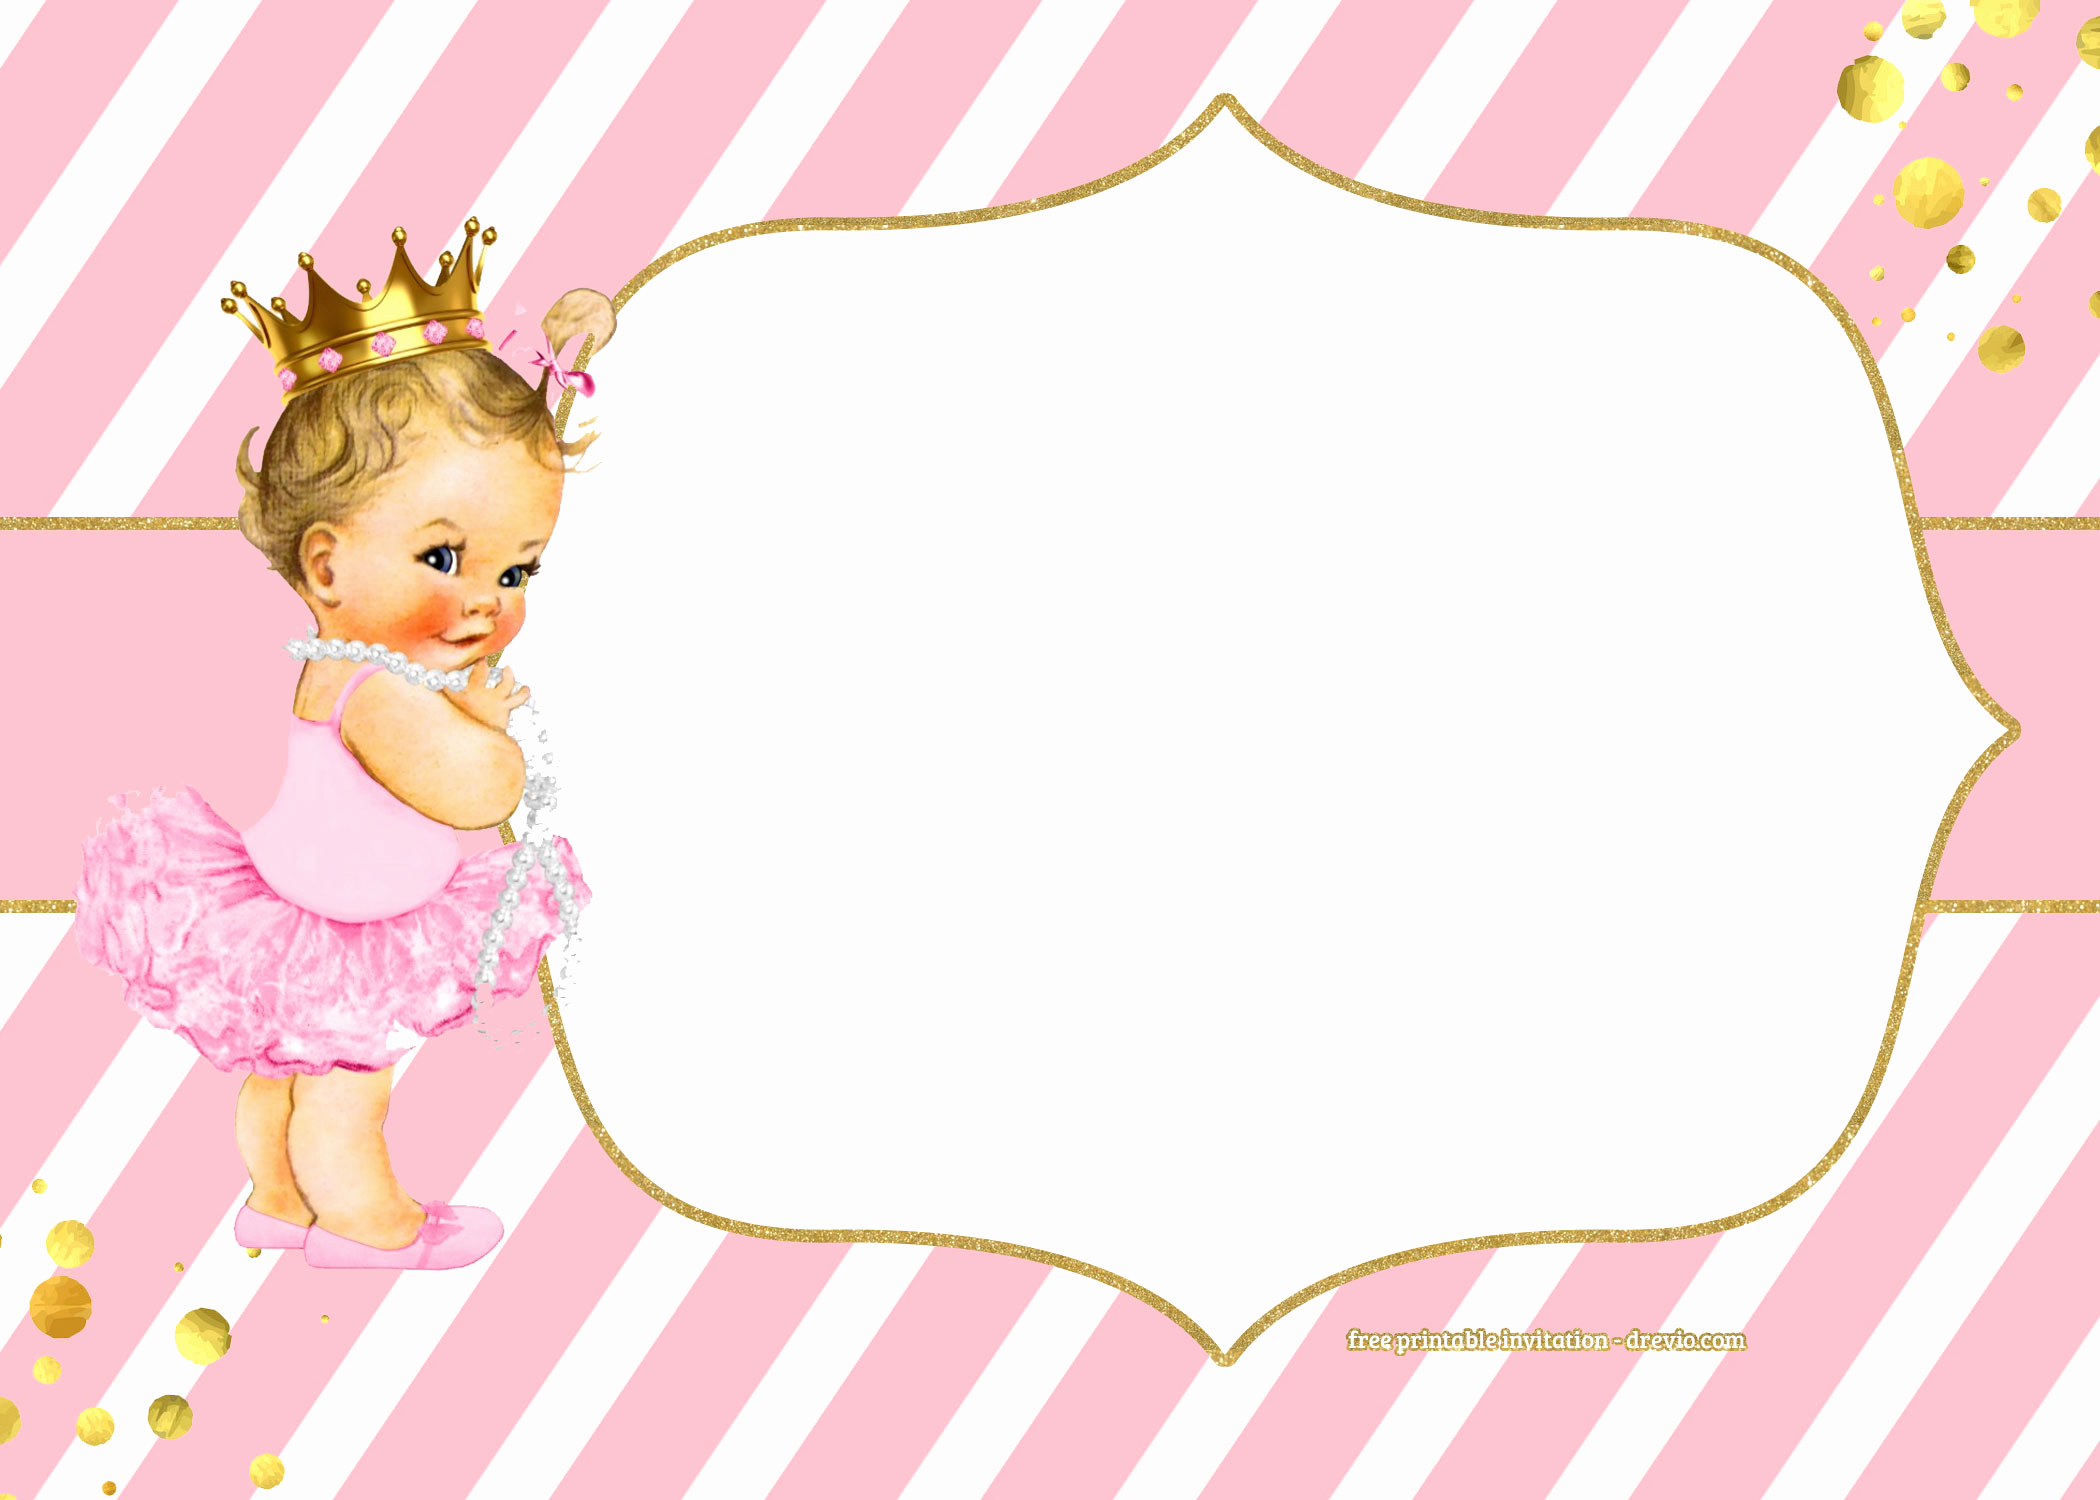 Ballerina Invitation Template Free Fresh Free Golden Ballerina Birthday Invitation Templates